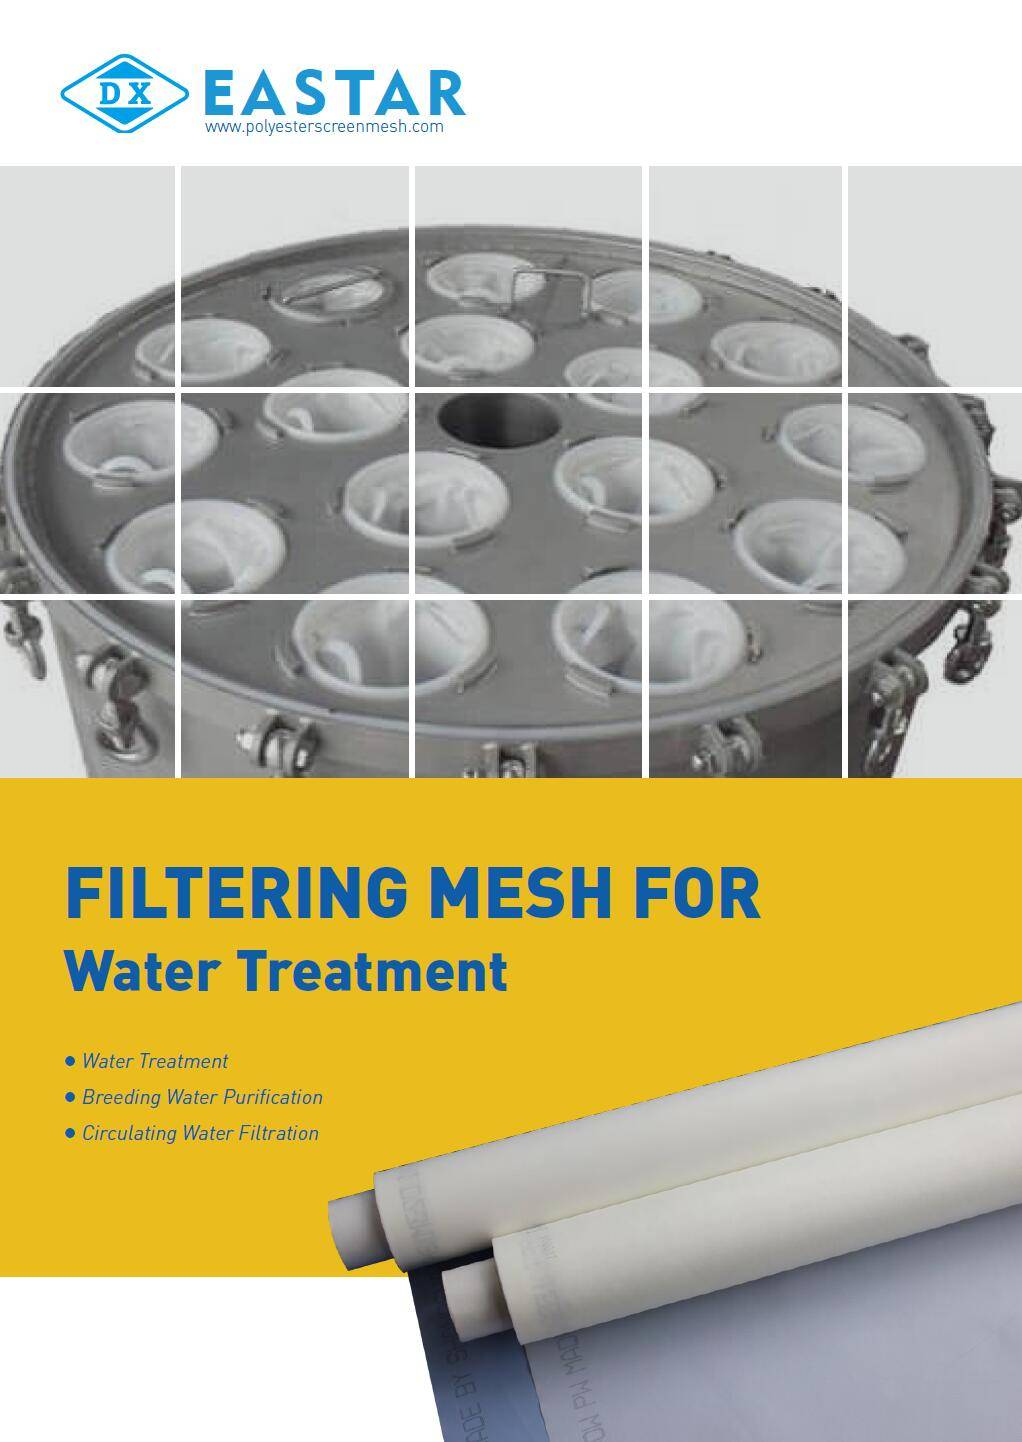 Nylon, polyester and stainless steel mesh for water treatment and filtering.